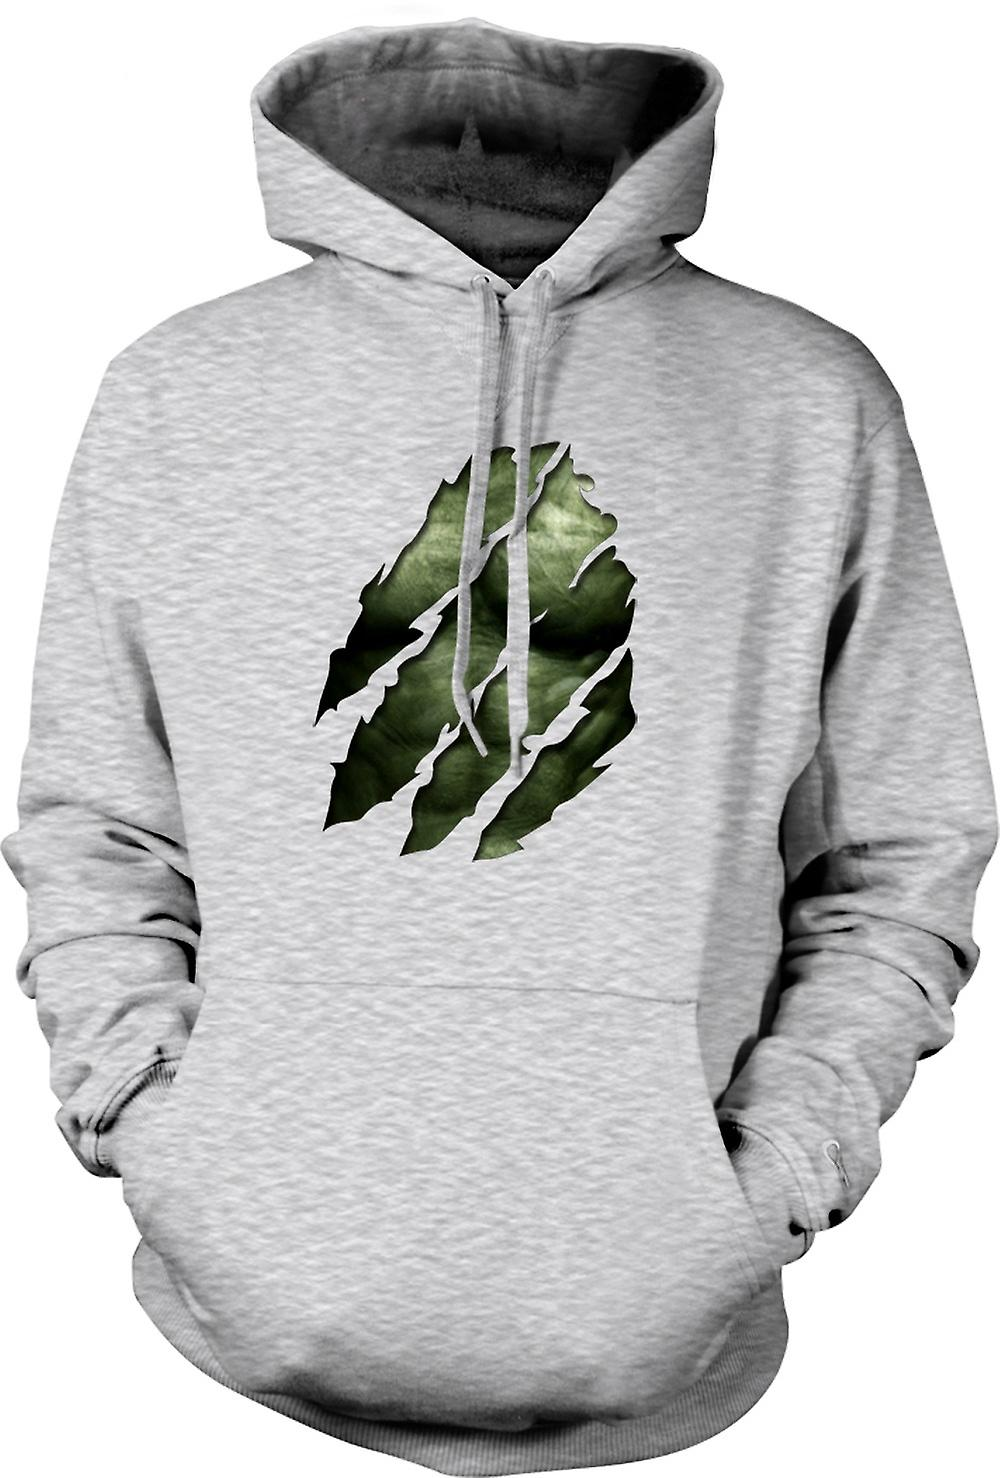 Mens Hoodie - The Hulk - Ripped Effect